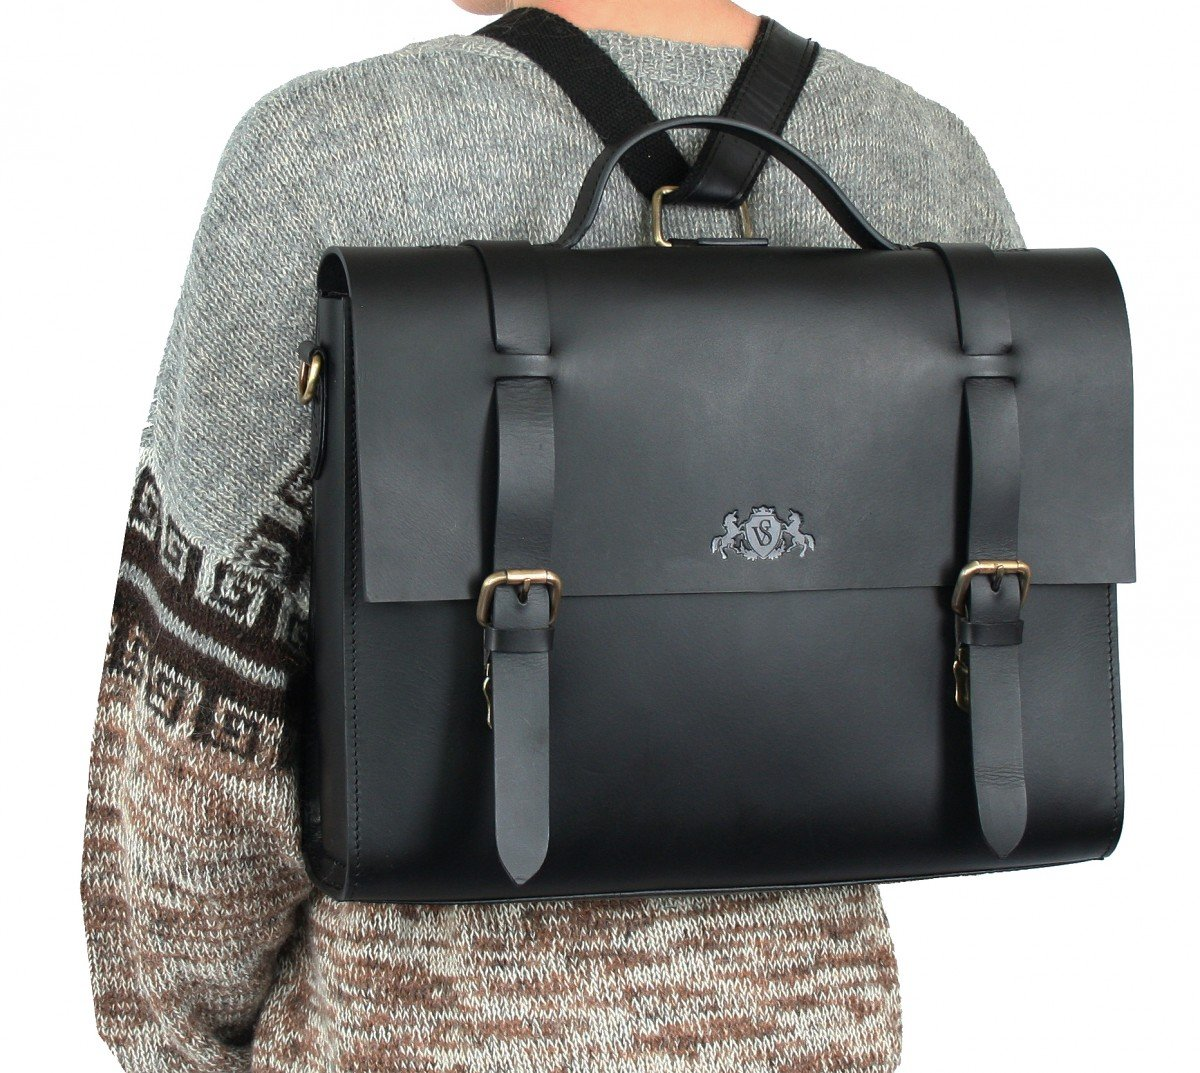 717c7c6faf90e SID   VAIN Aktentasche echt Leder Boston Duo groß Laptoptasche  Multifunktionstasche 15